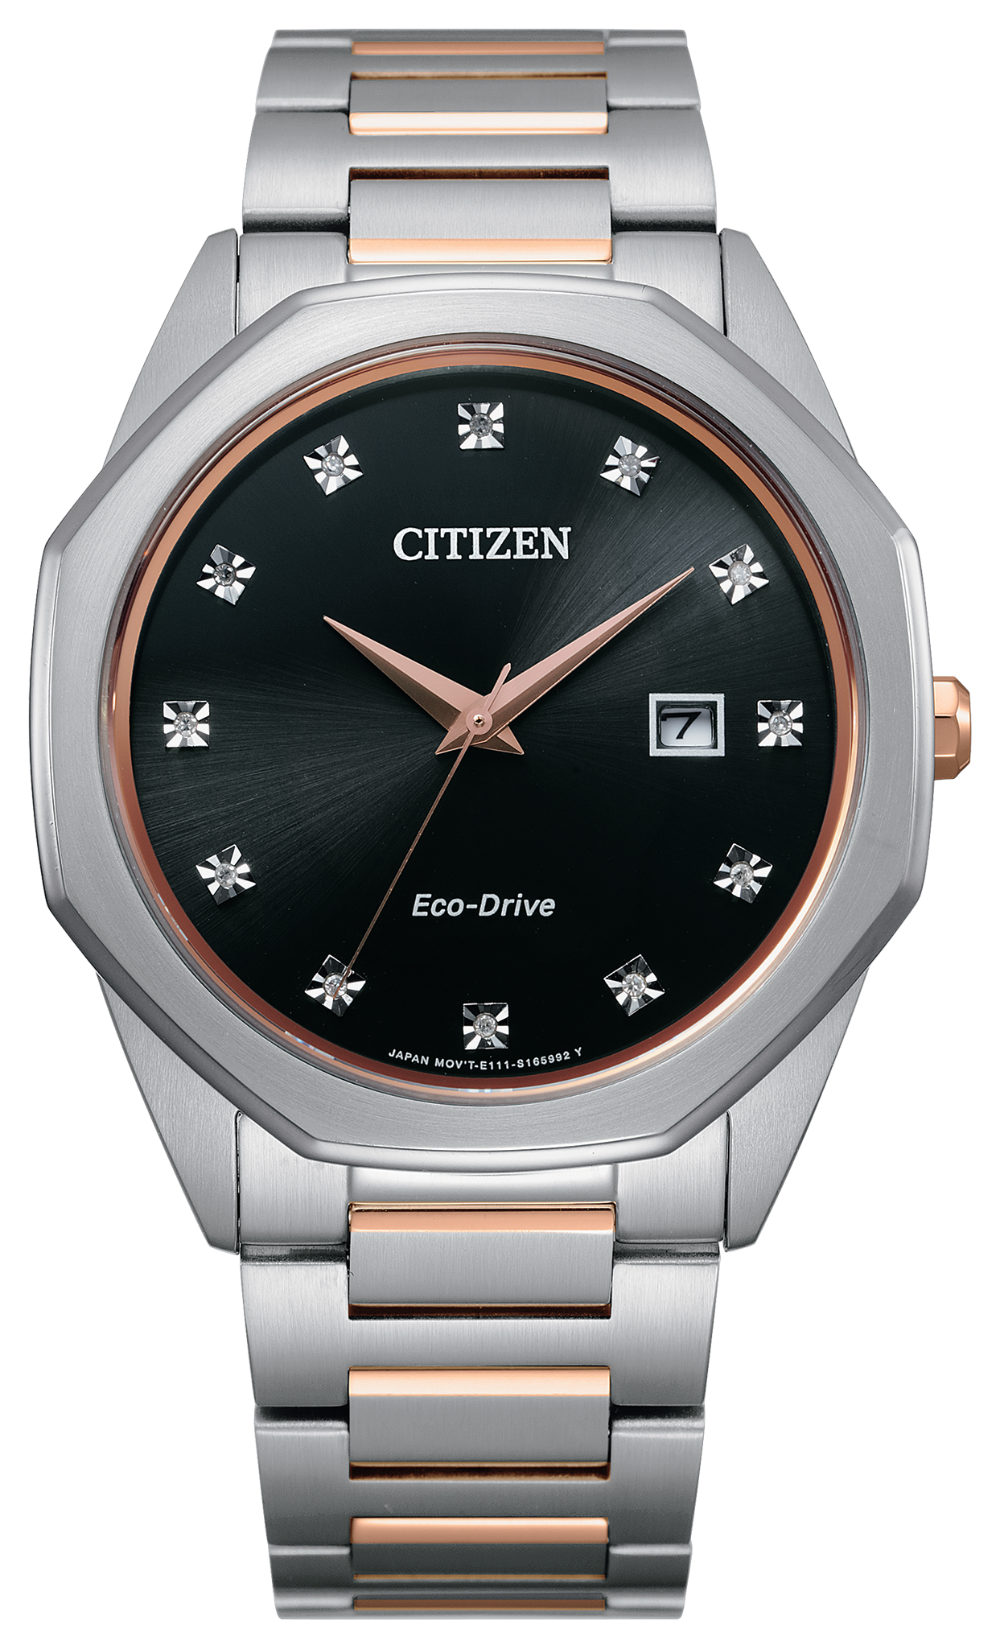 Corso Rose Gold-Tone - Citizen Eco Drive